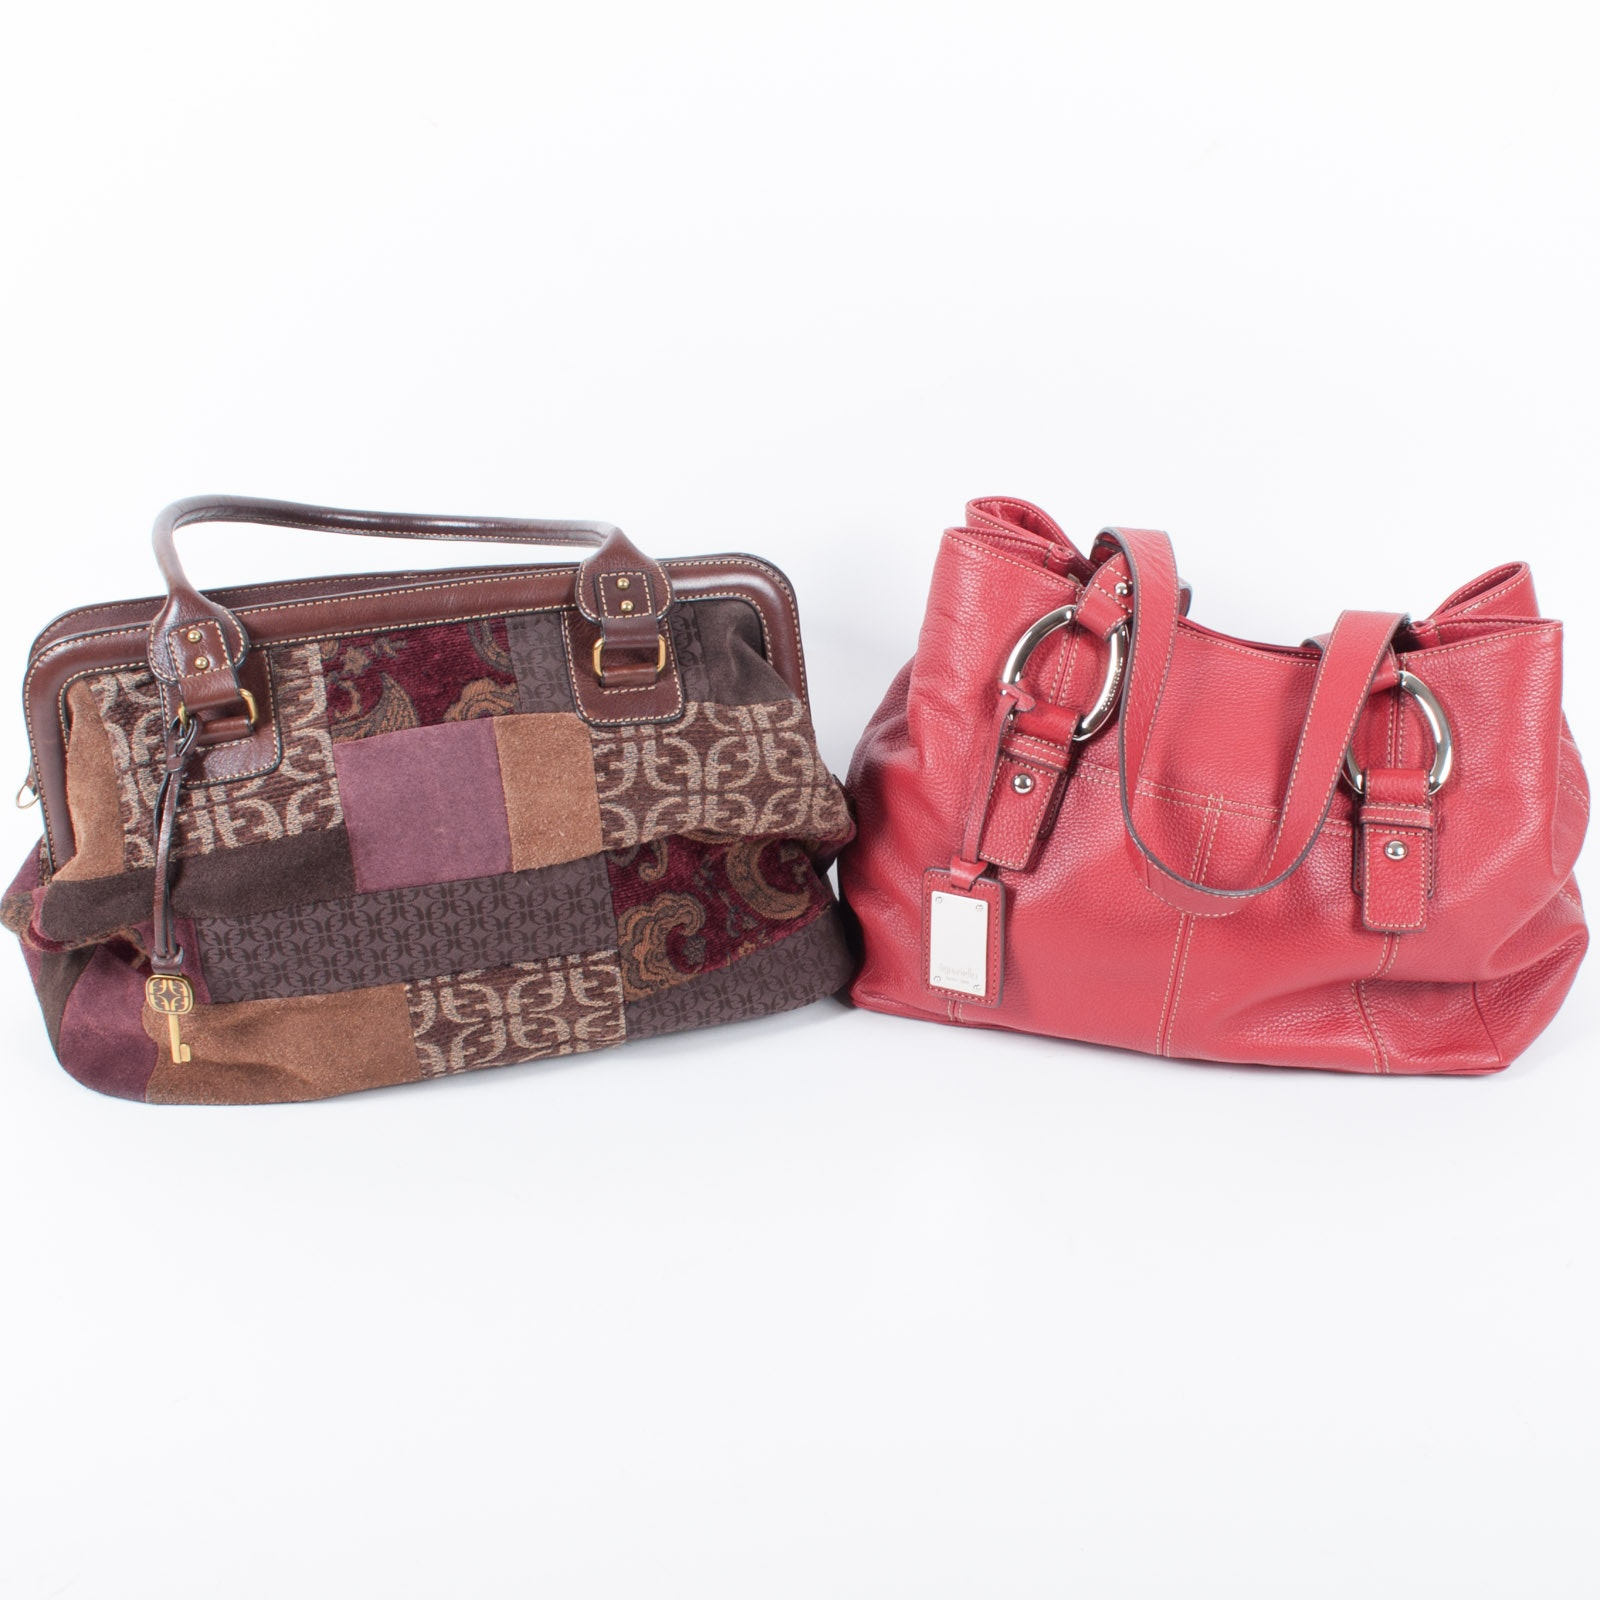 Tignanello Red Leather Handbag and Fossil Patchwork Handbag